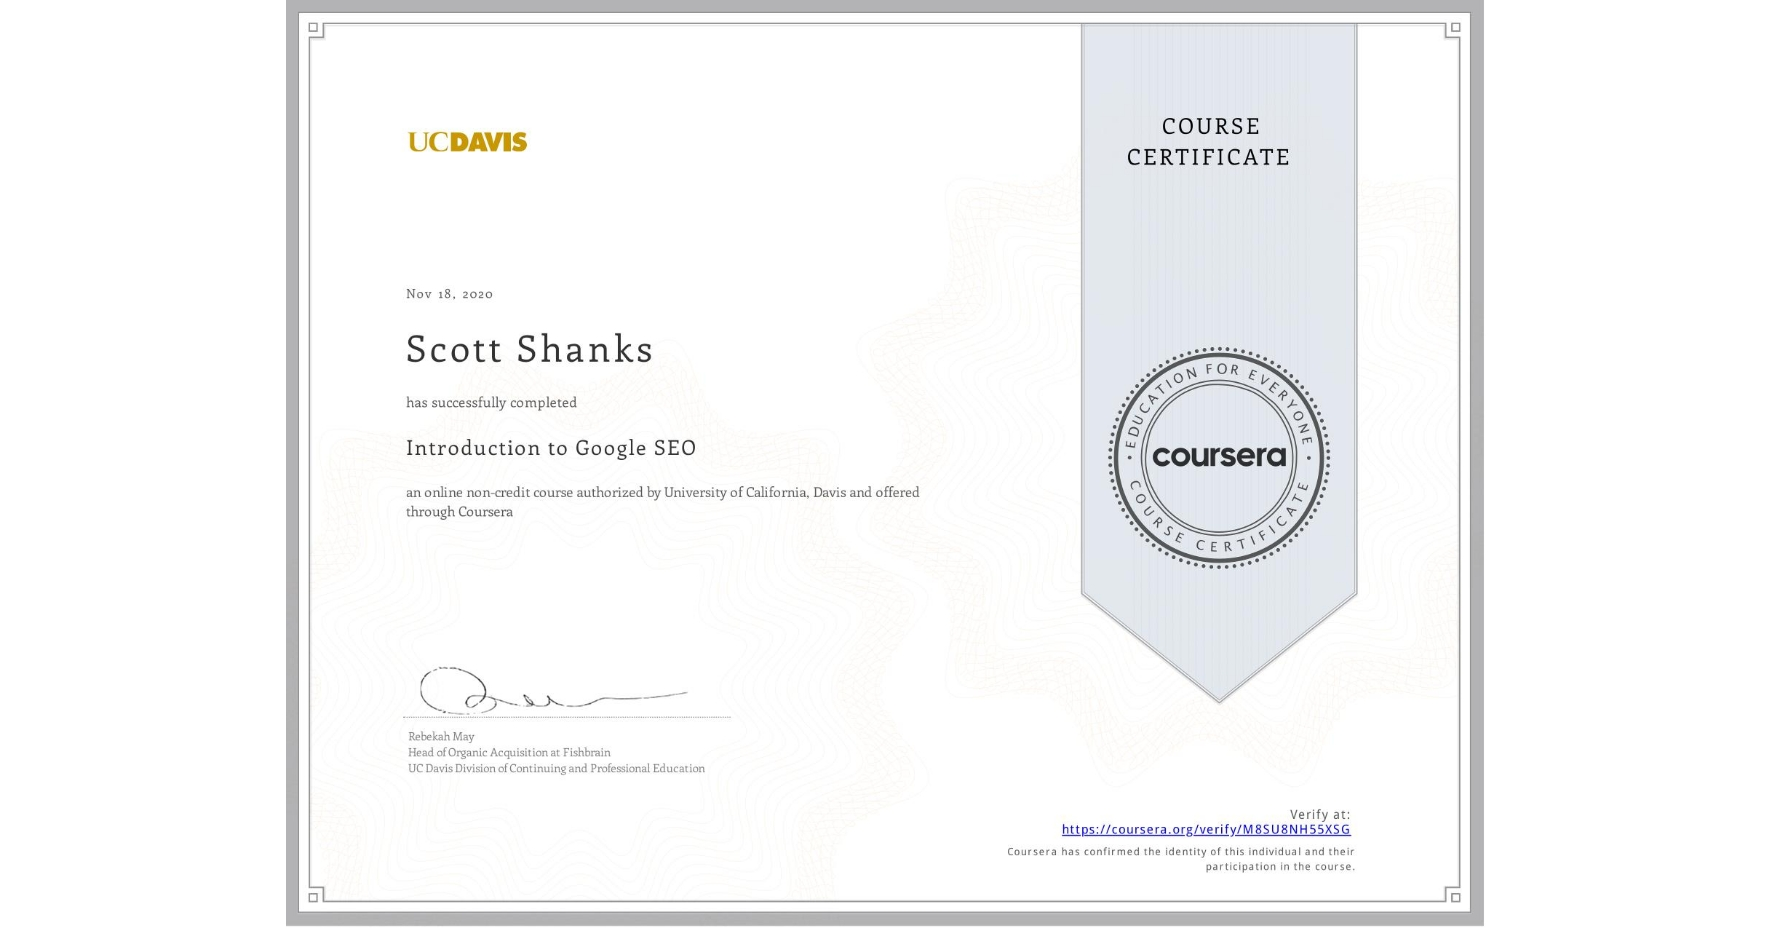 View certificate for Scott Shanks, Introduction to Google SEO, an online non-credit course authorized by University of California, Davis and offered through Coursera